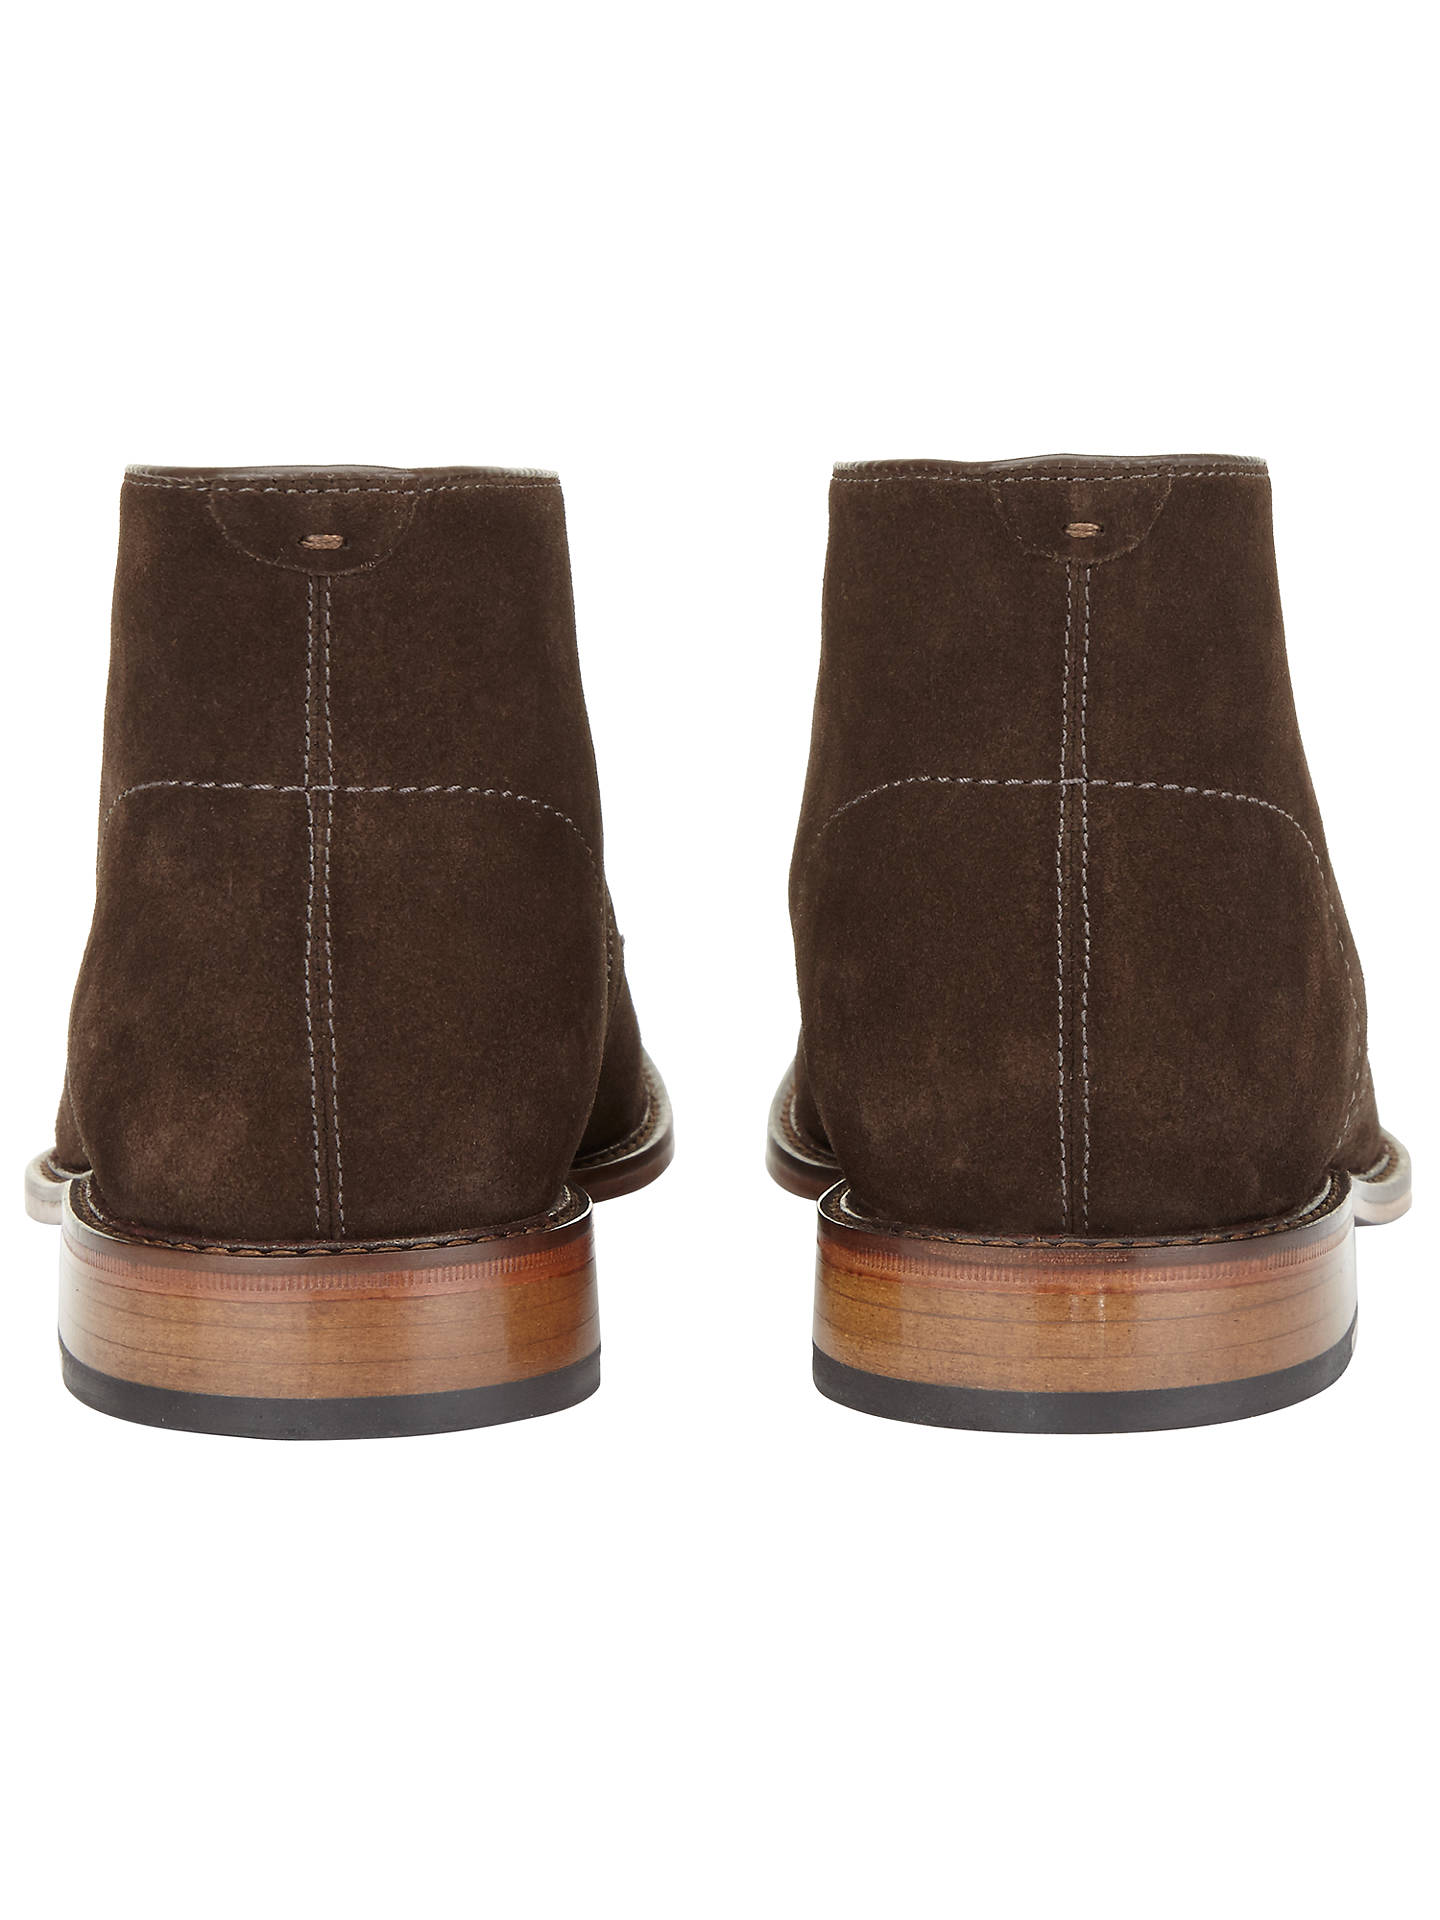 BuyJohn Lewis & Partners Chumbley Suede Chukka Boots, Chocolate, 7 Online at johnlewis.com